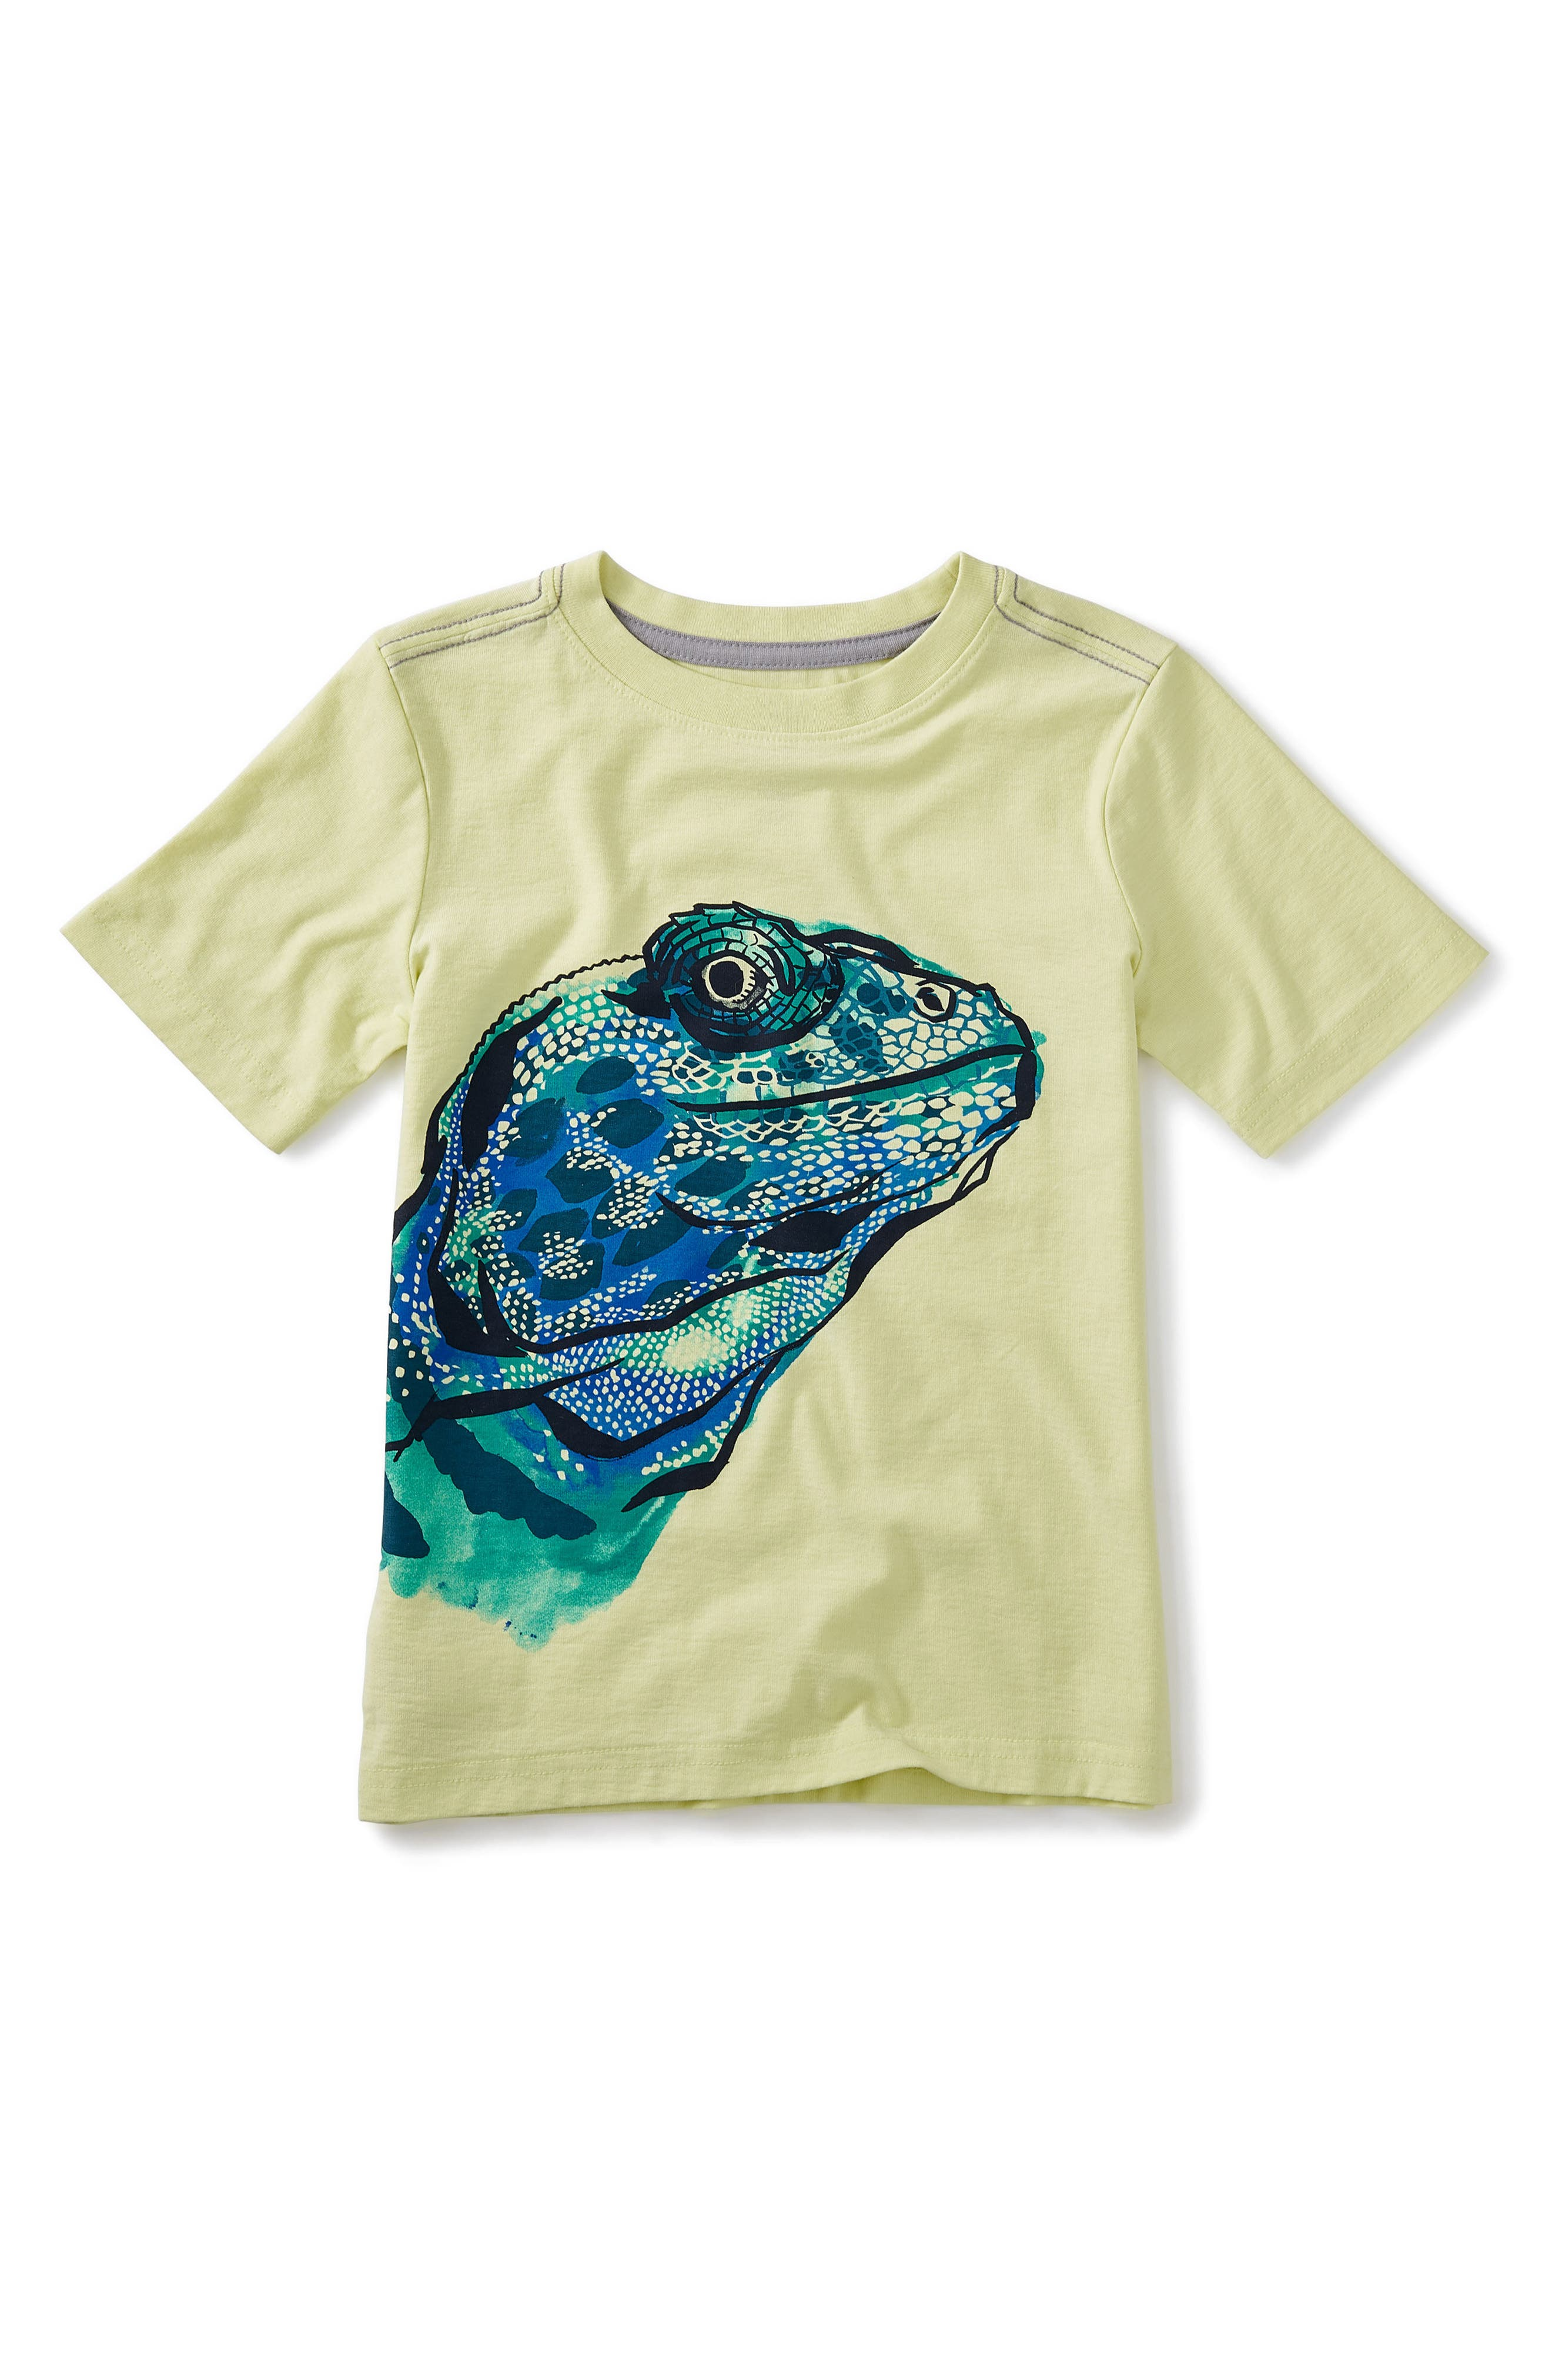 Lizard Graphic T-Shirt,                         Main,                         color, 771